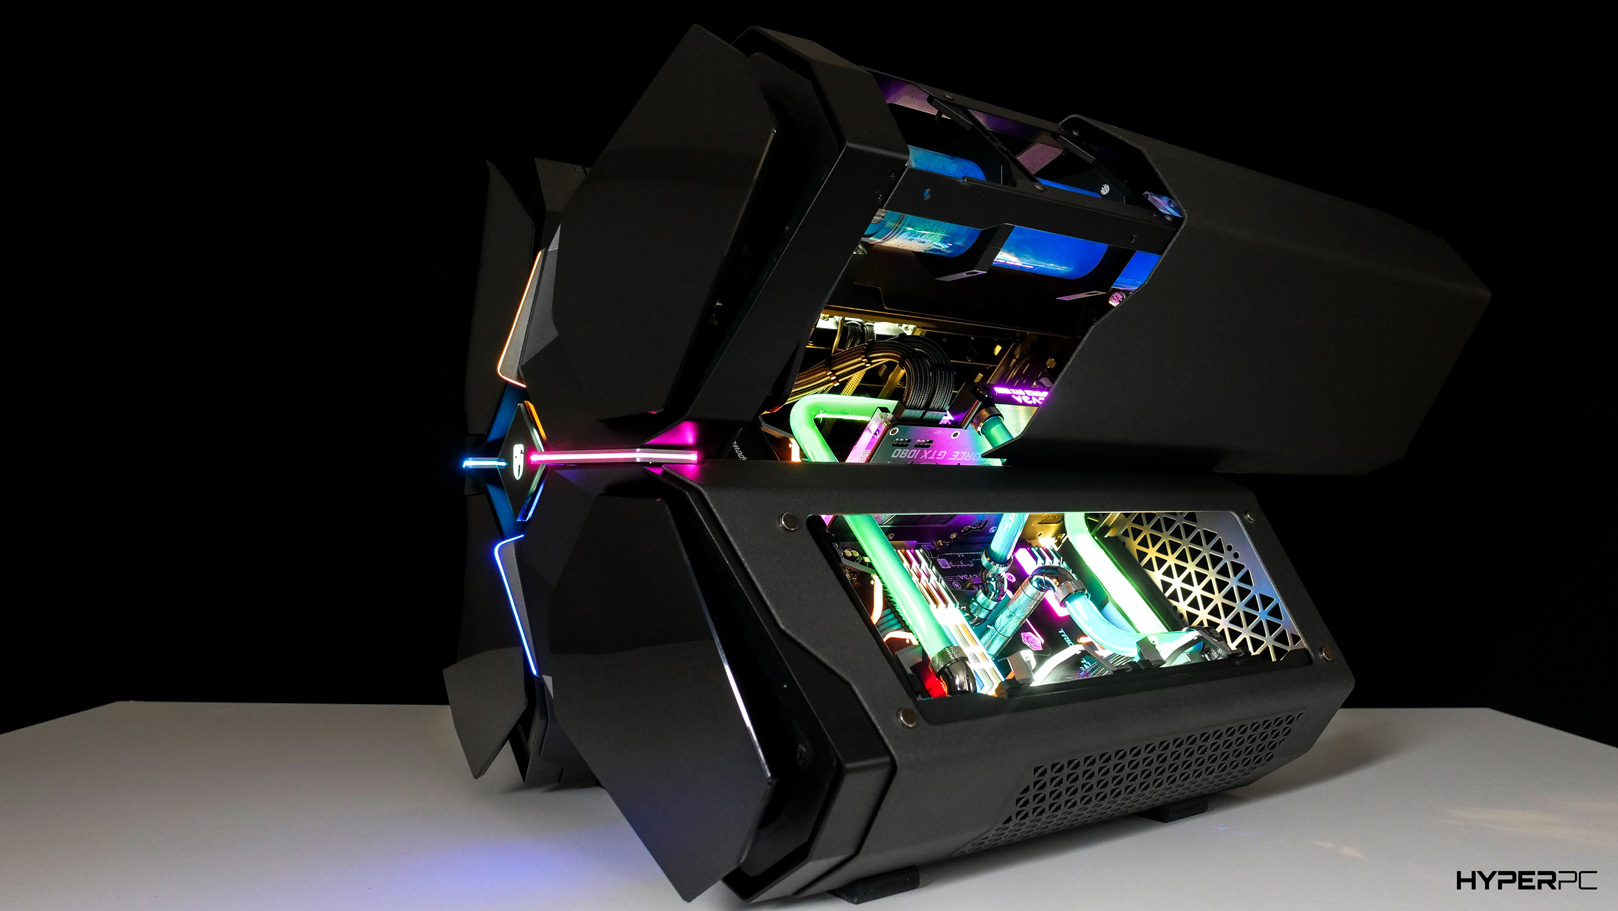 https://hyperpc.ru/images/product/special/exclusive/hyperpc_game_storm/gallery/deepcool_quadstellar_rgb_photo_02.jpg